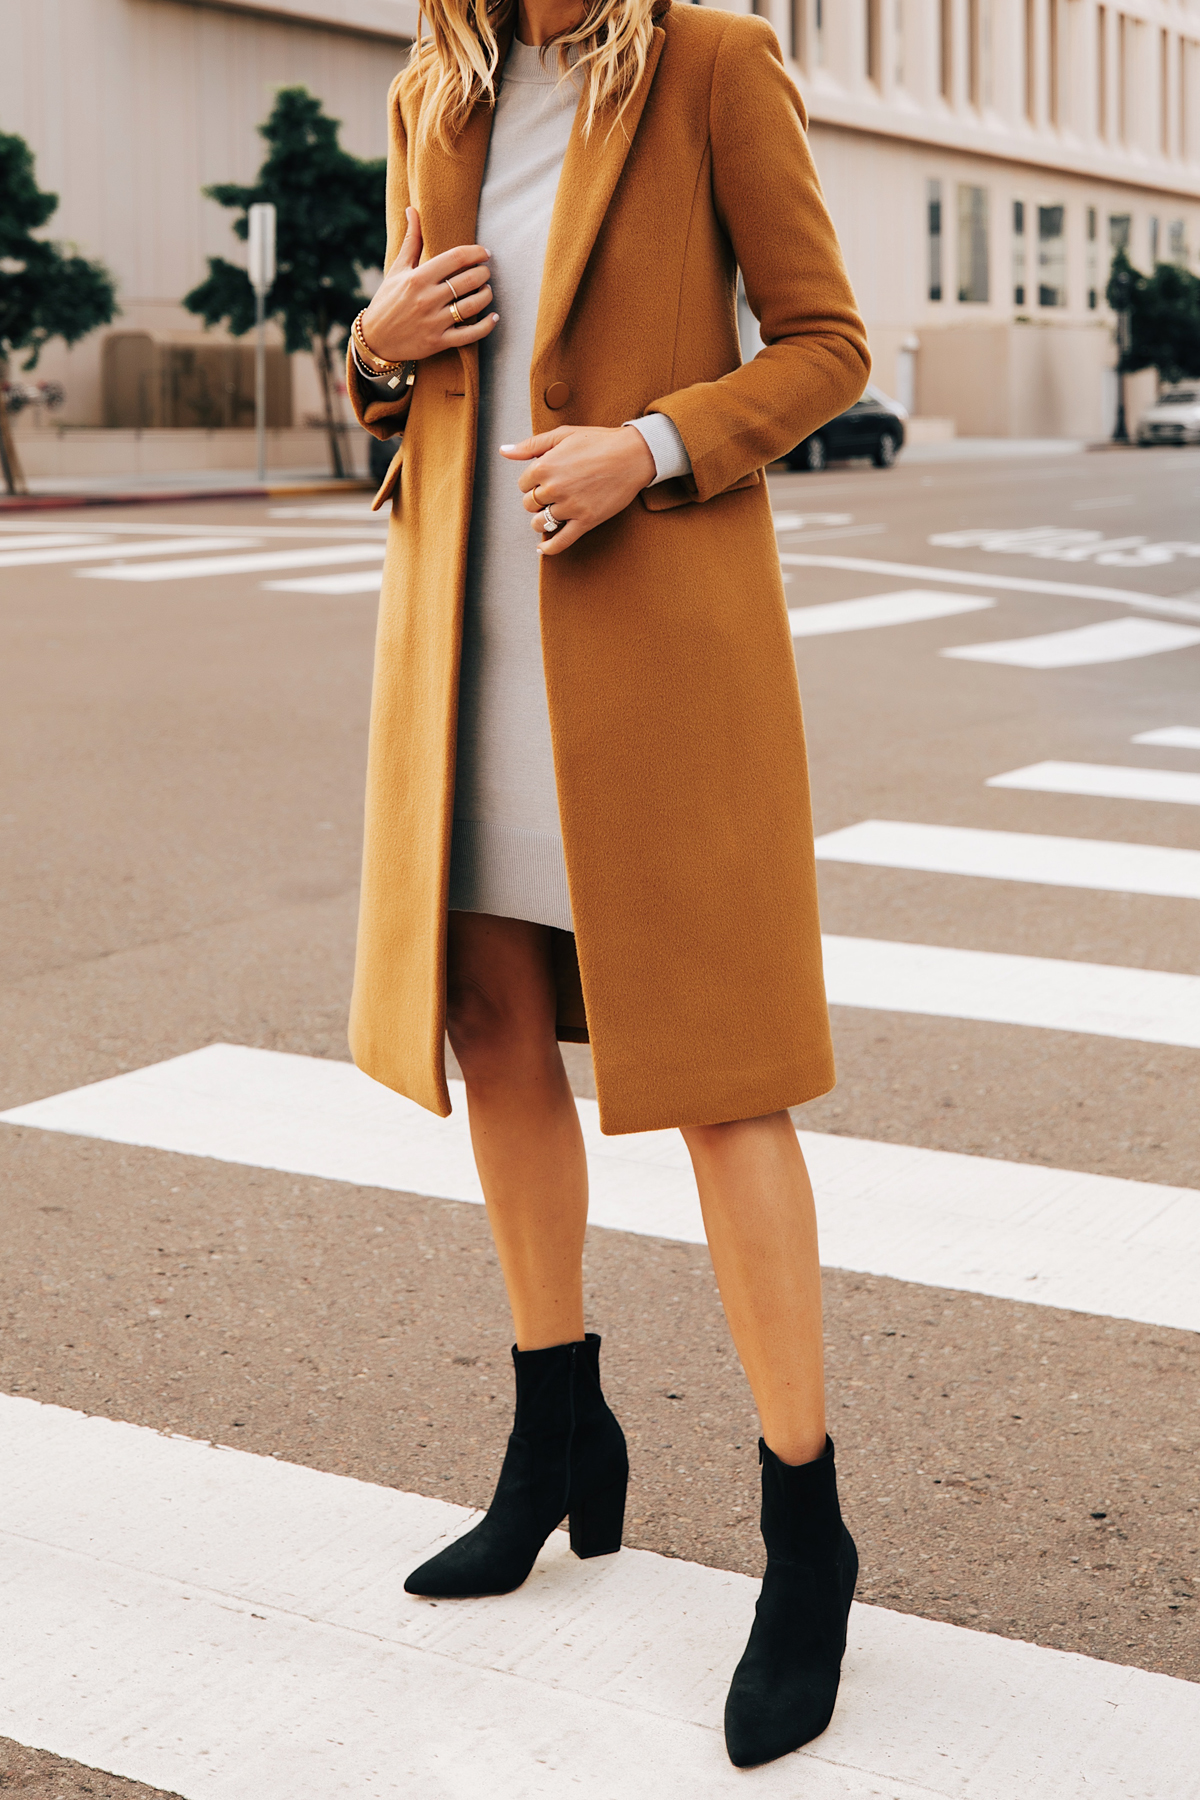 Fashion Jackson Wearing Club Monaco Camel Coat Grey Sweater Dress Black Booties 2